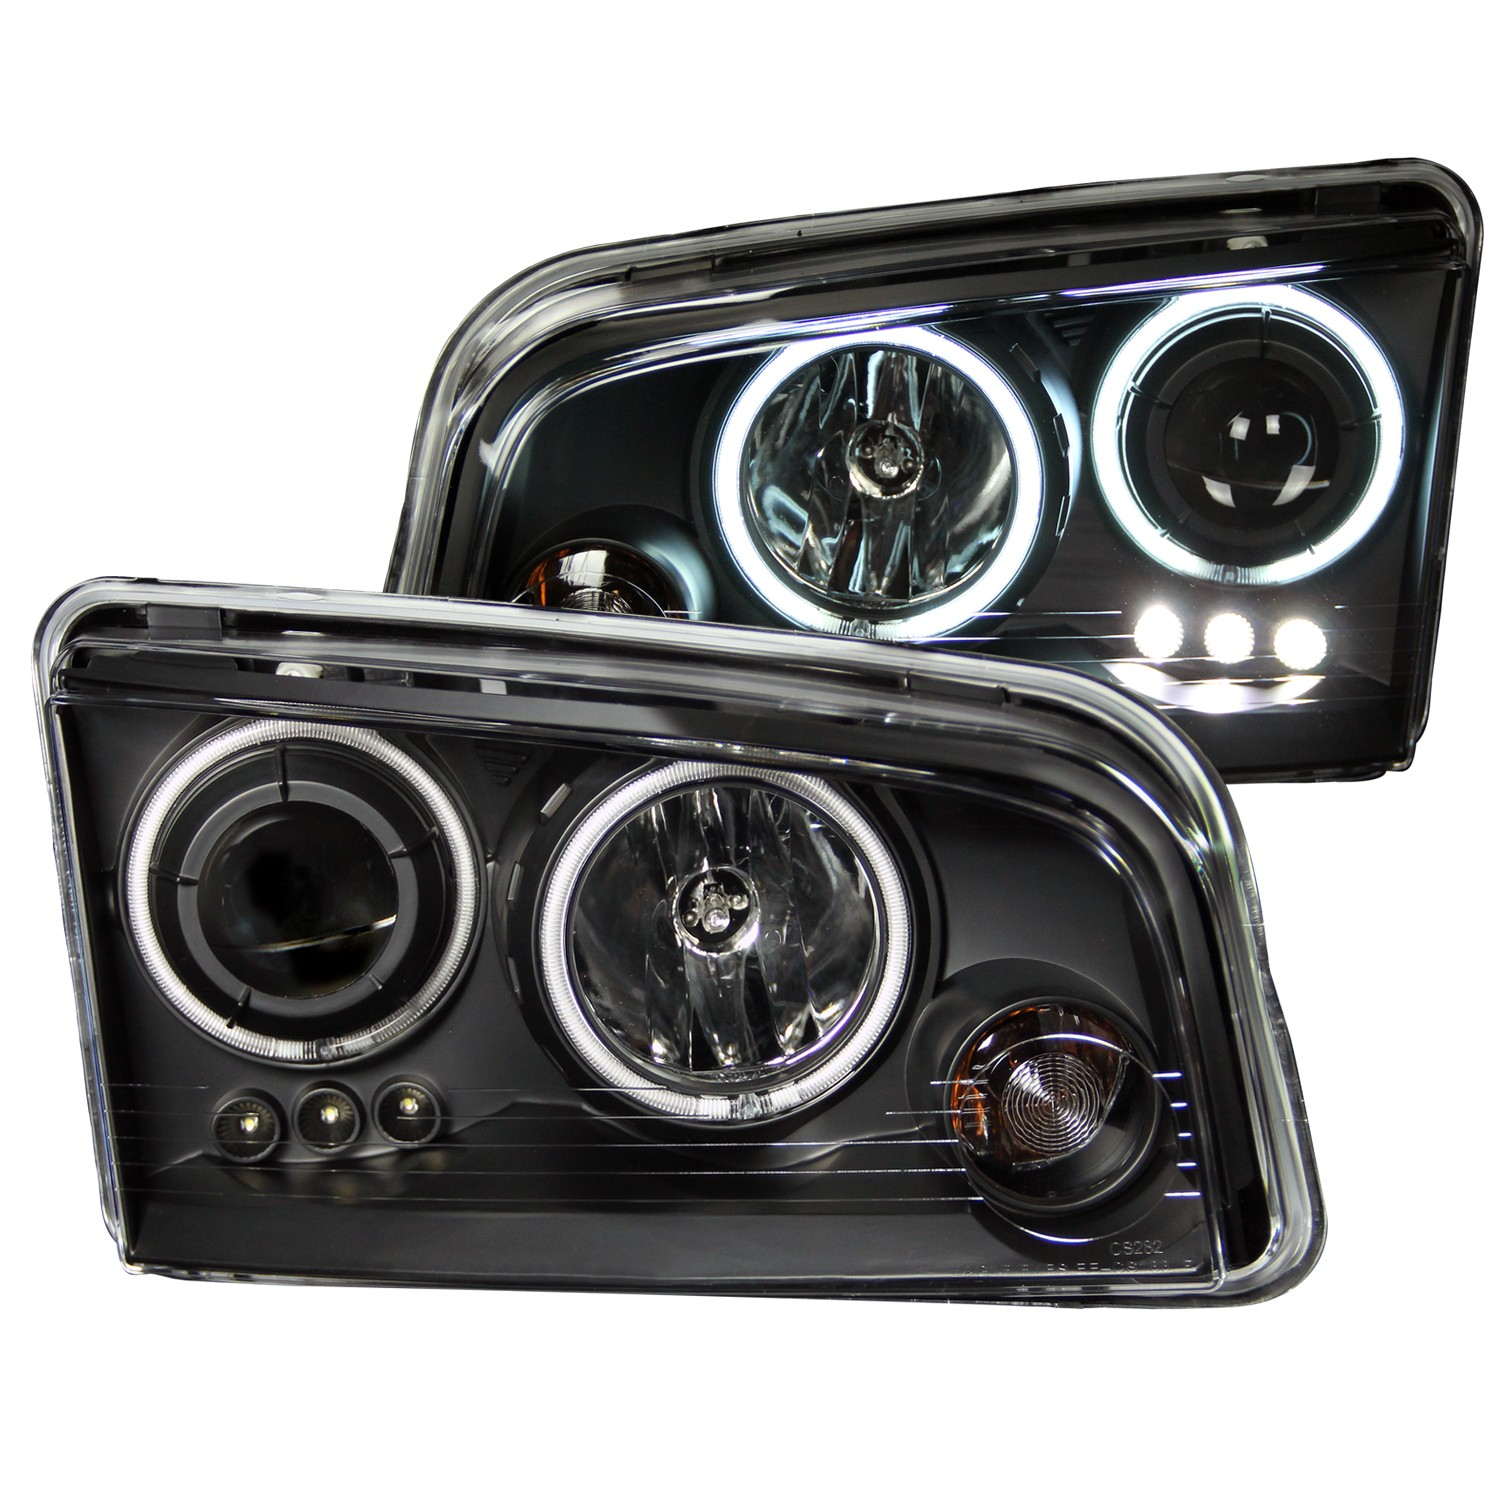 2006-2010 Dodge Charger ANZO Project Halo Head Lights & LED w/Halogen Bulbs, Clear Lens & Black Housing